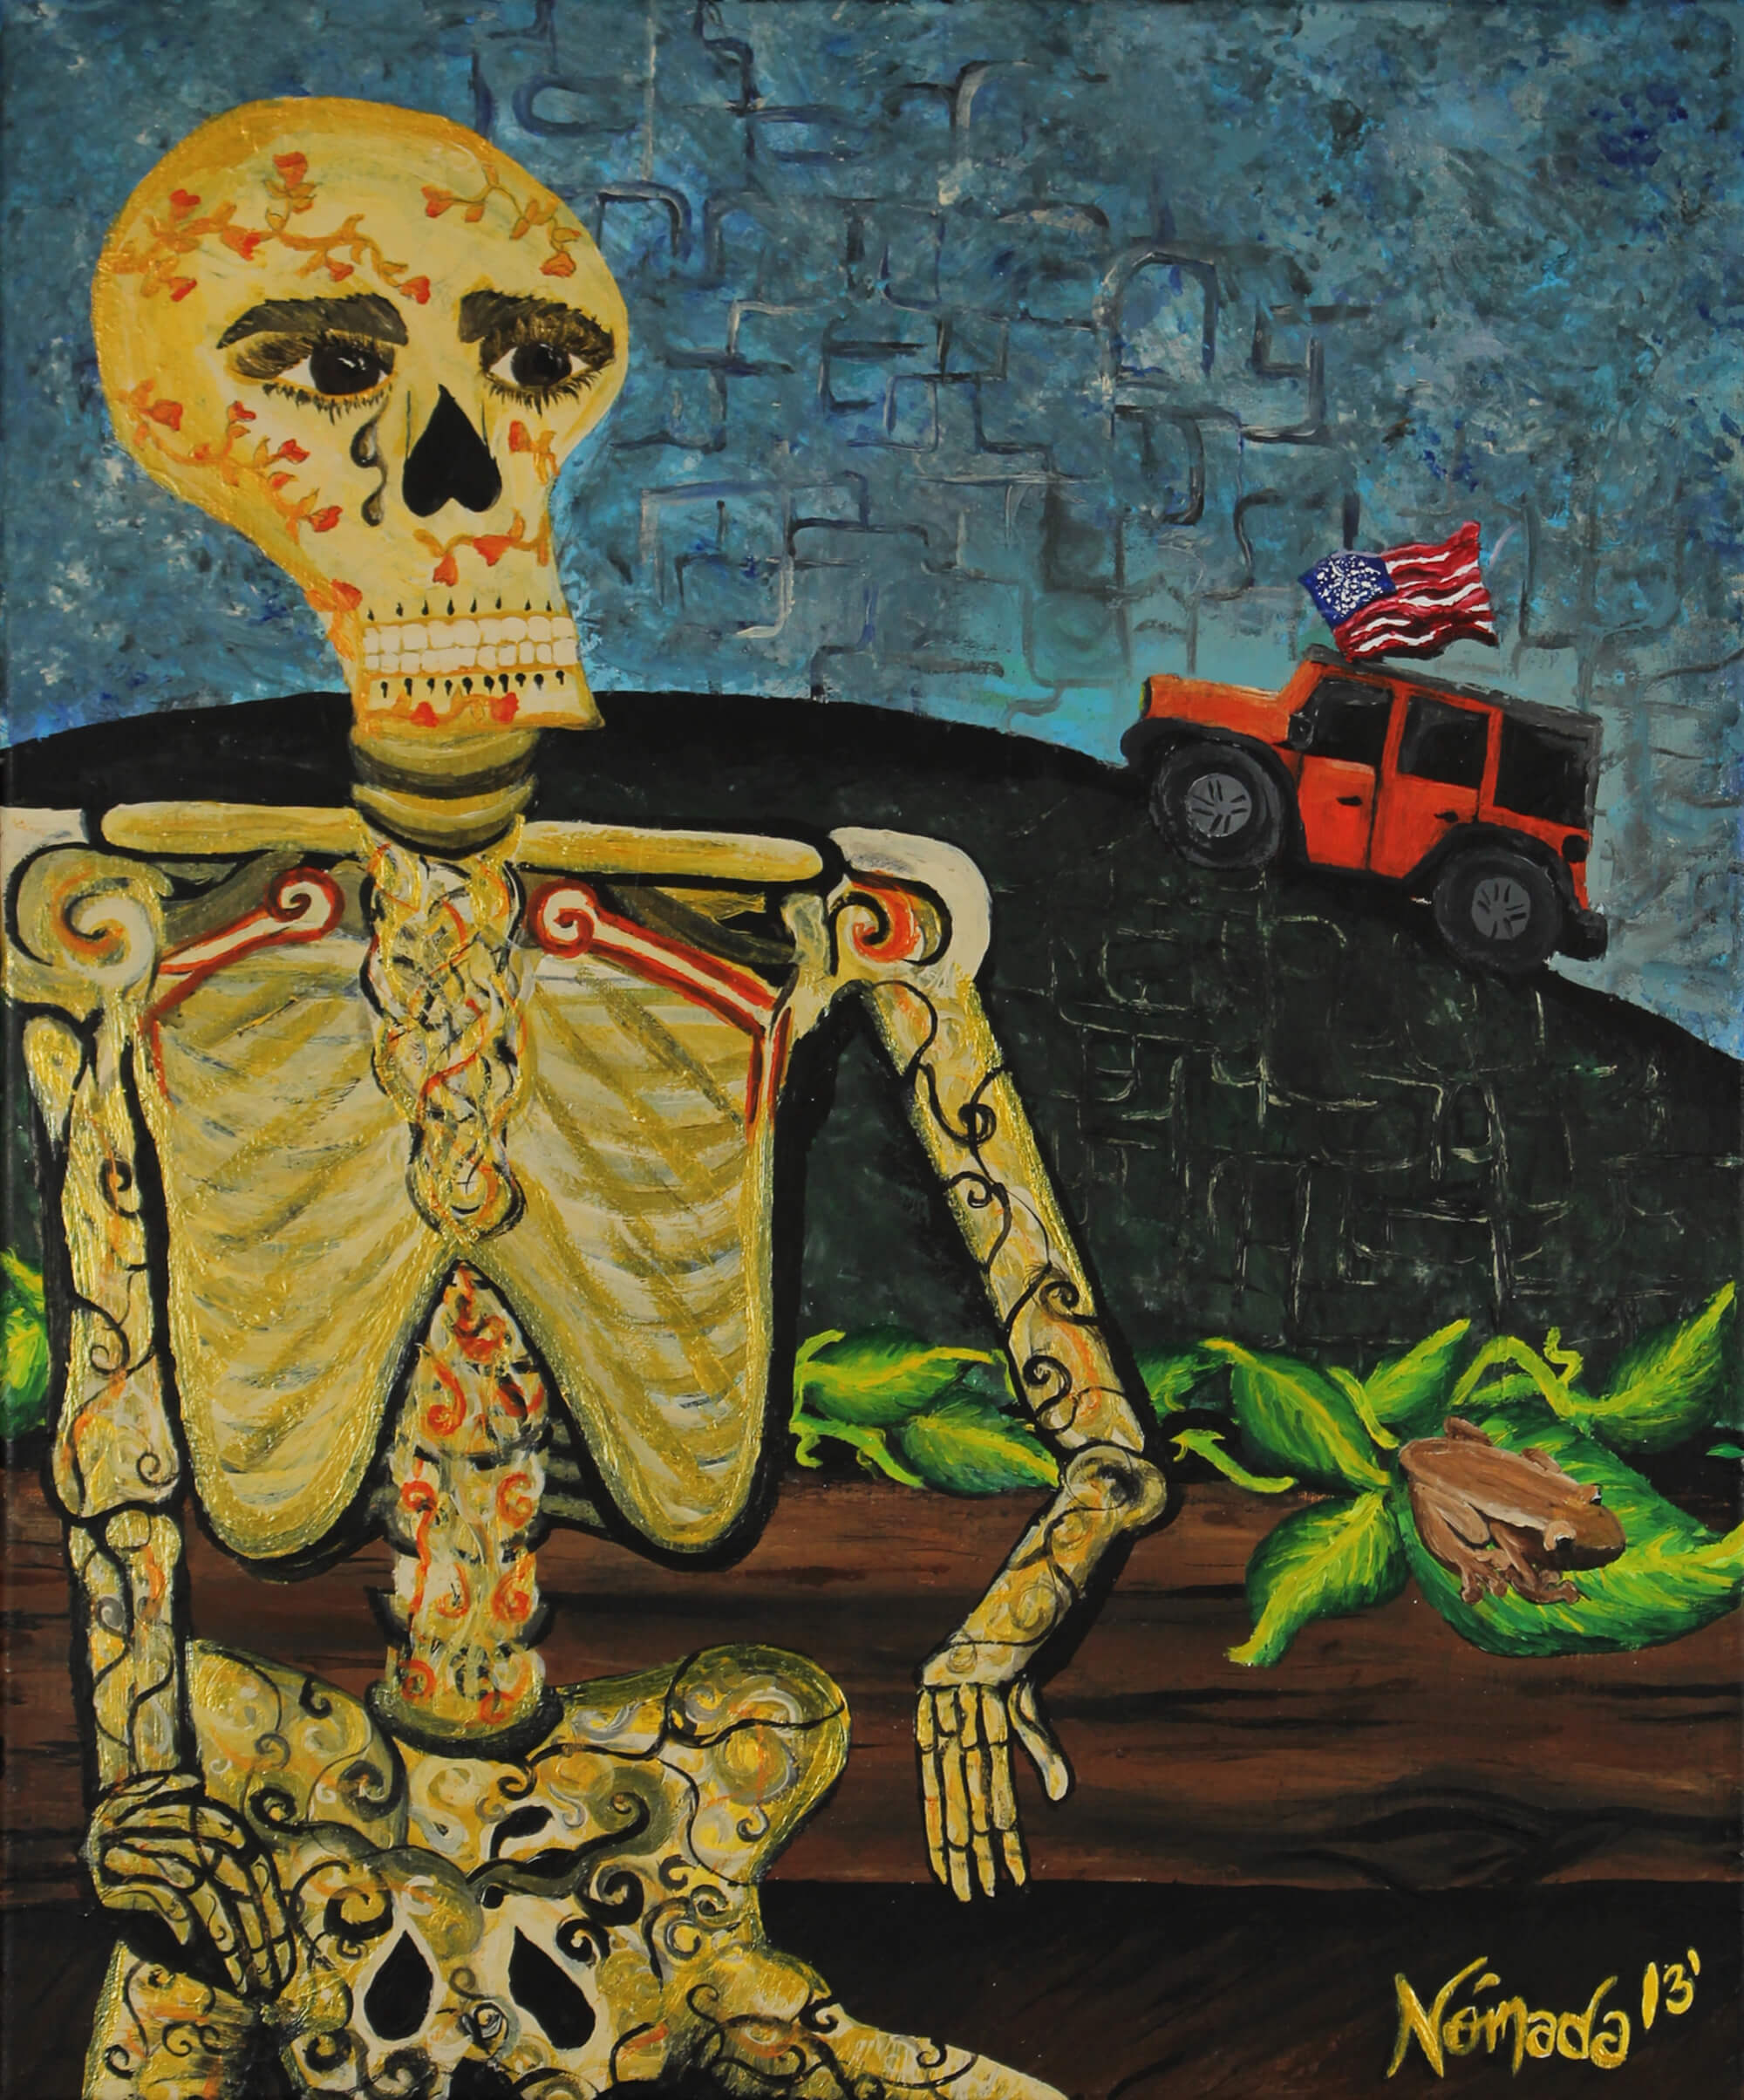 Acrylic painting of live skeleton with a grim scenery on background symbolizing lost hope by Nómada